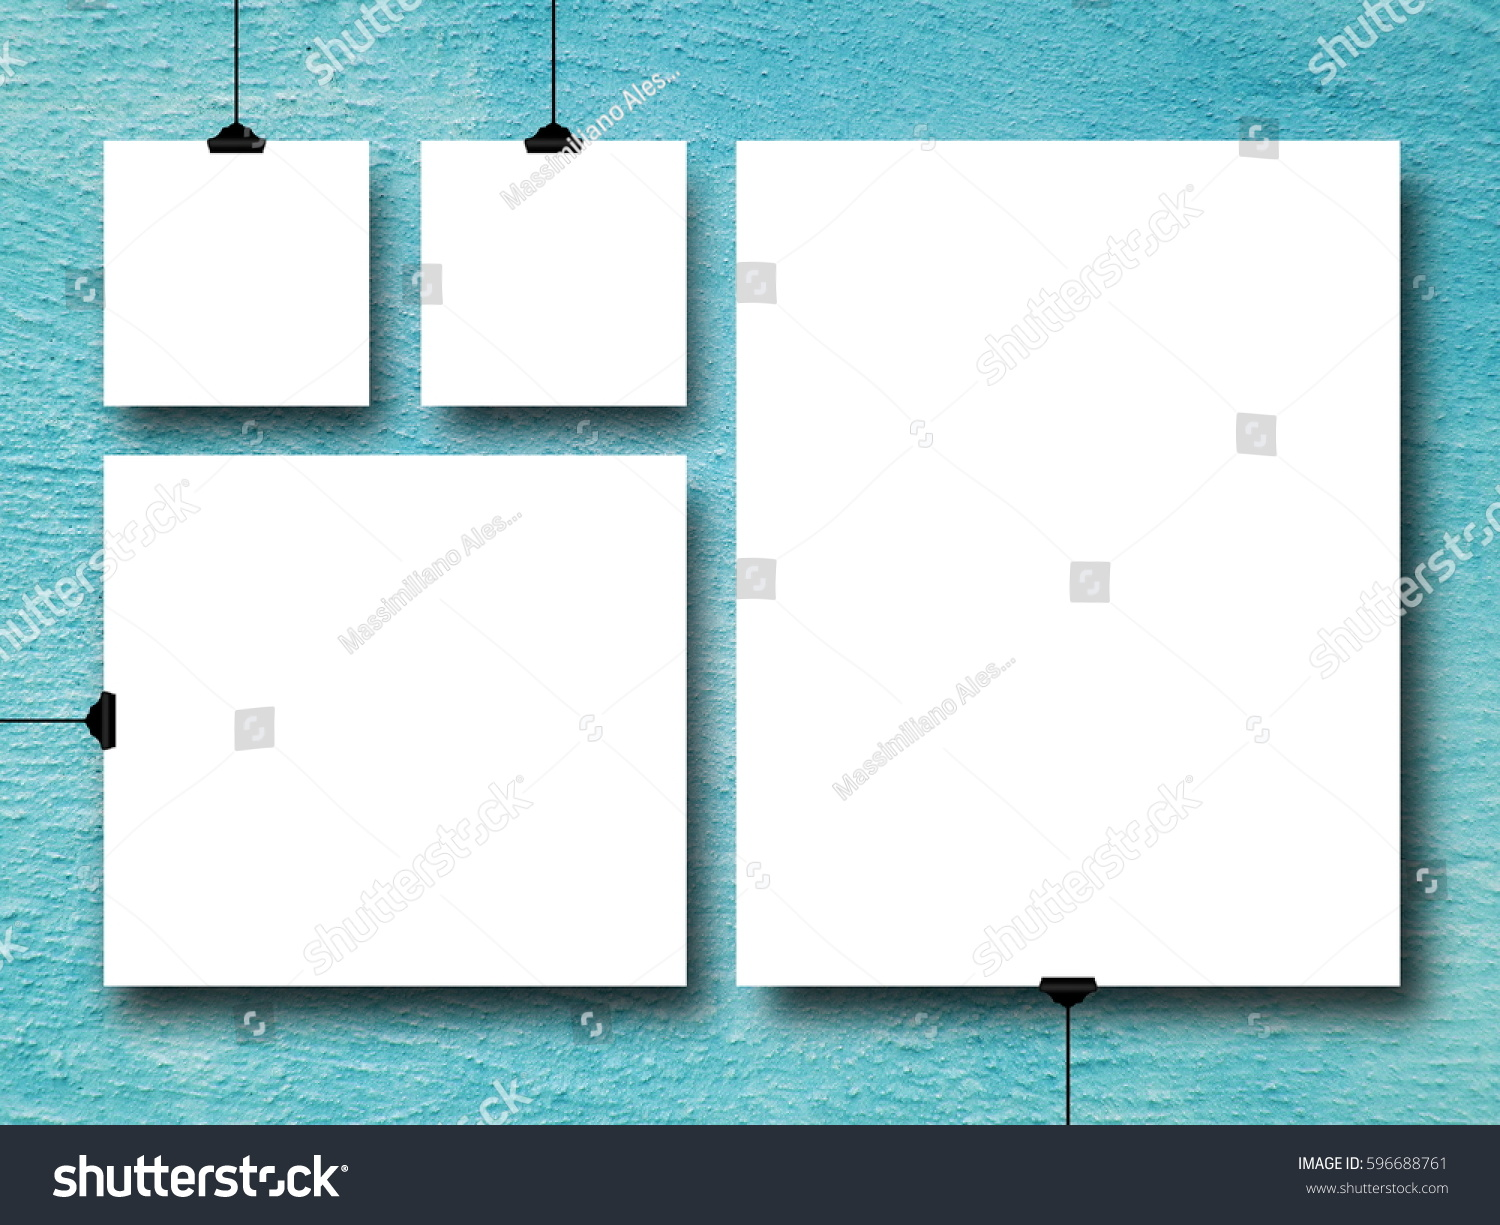 Royalty-free Multiple square and rectangular frames… #596688761 ...